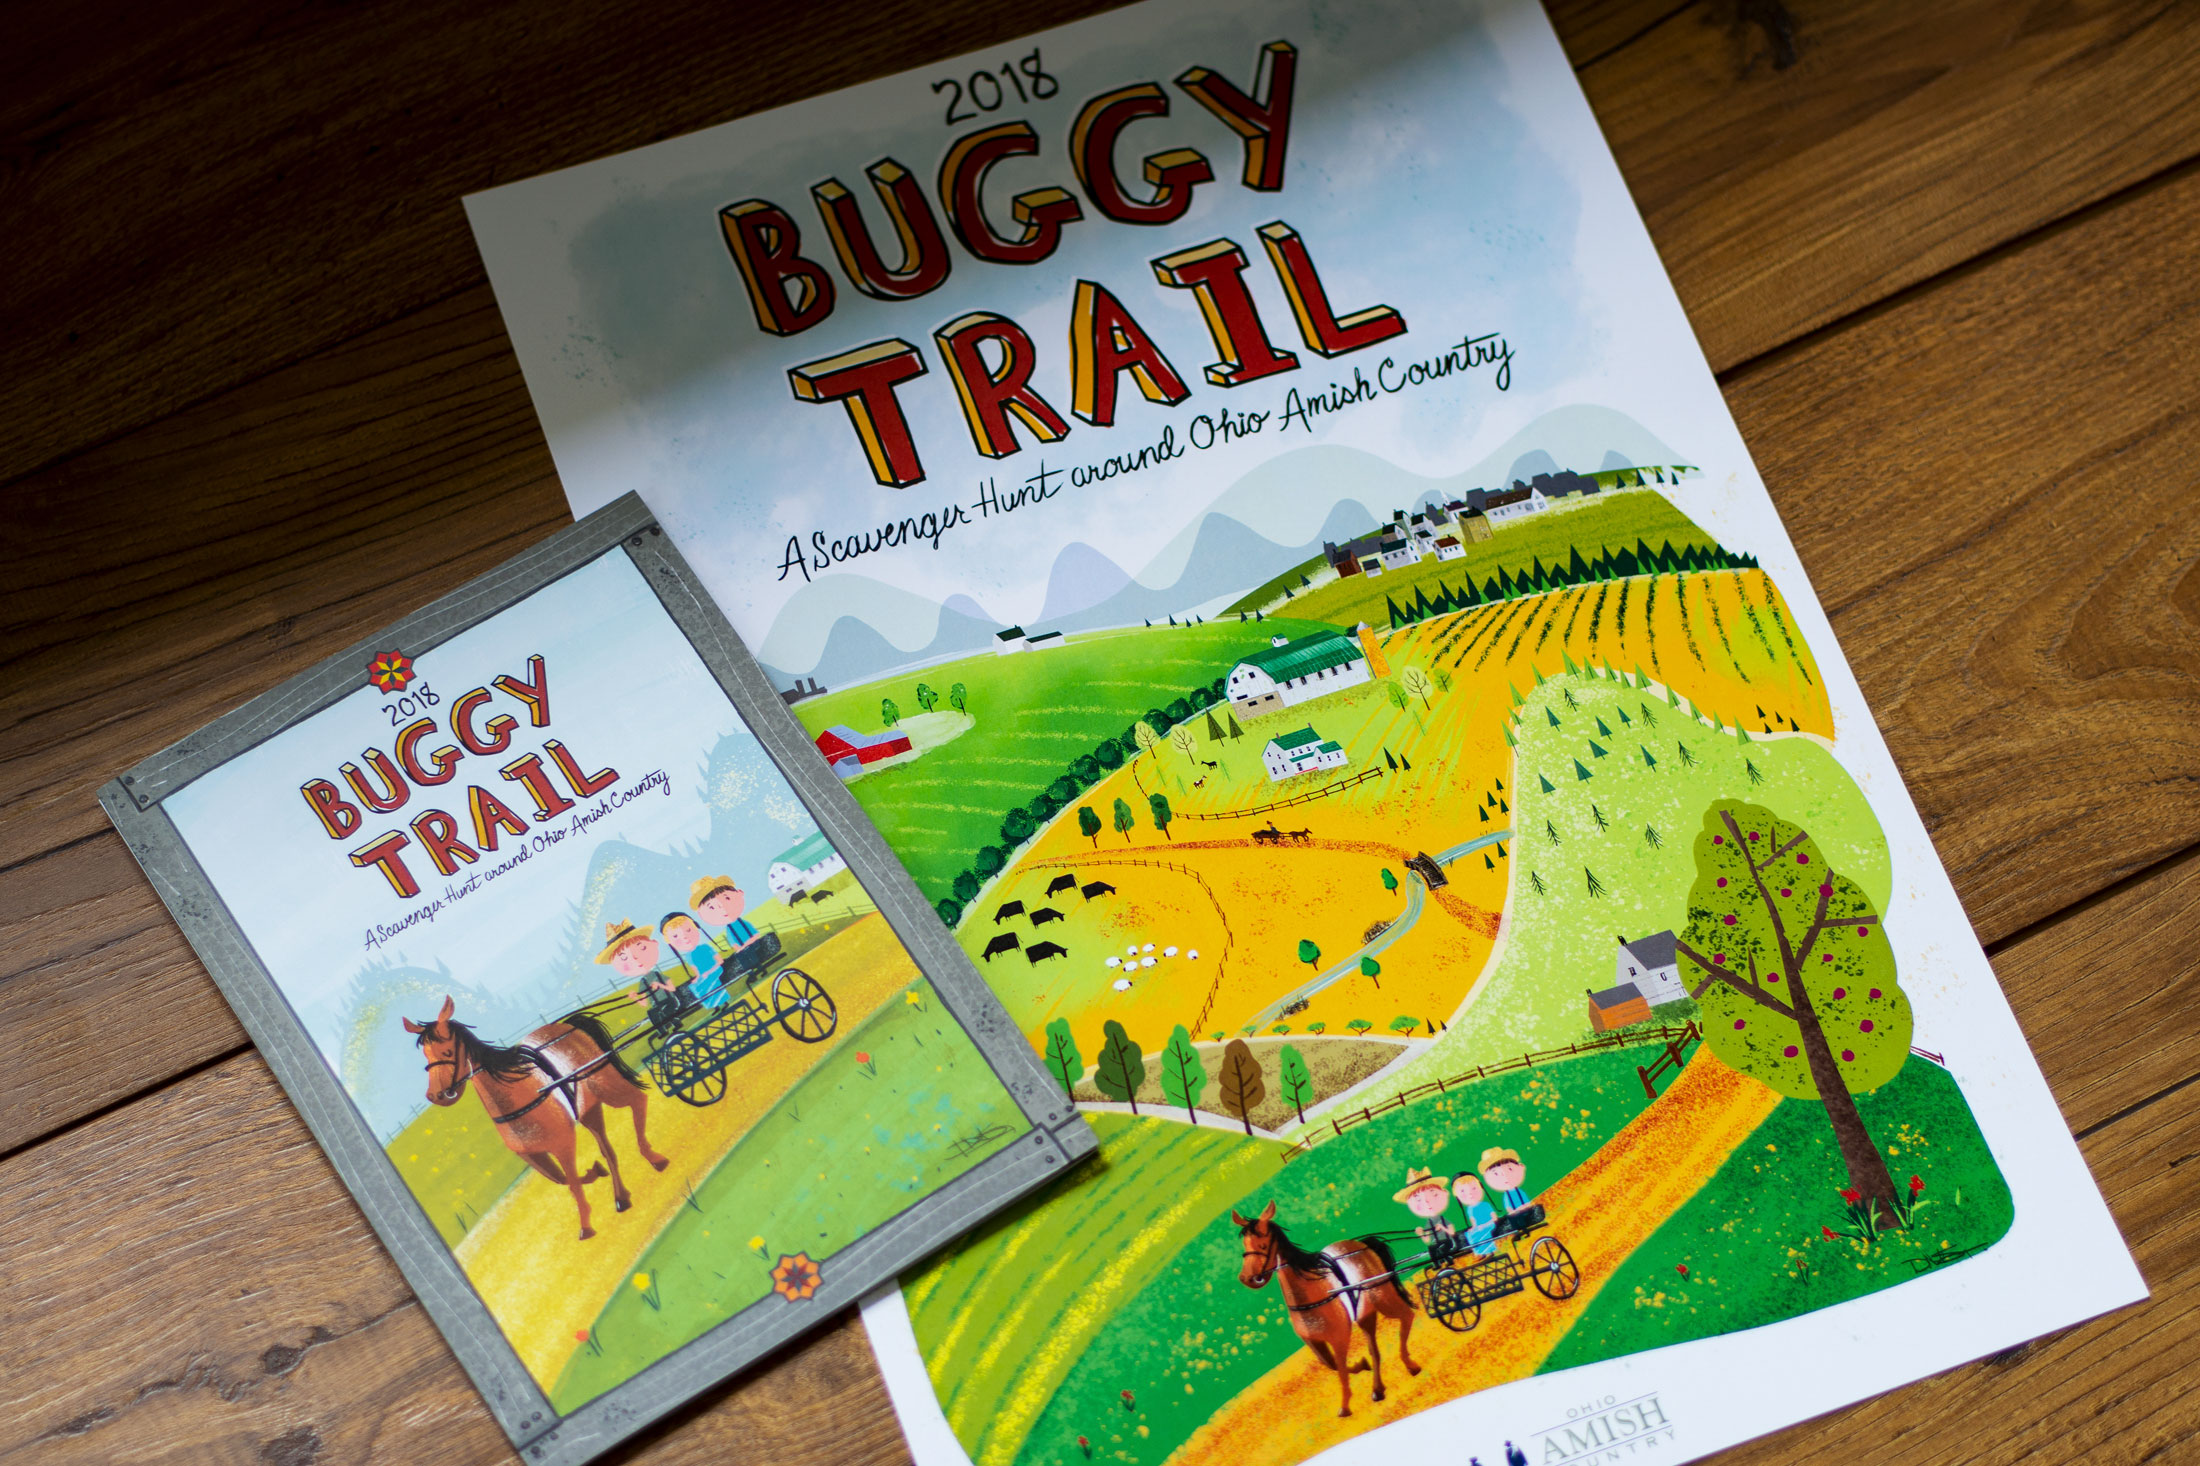 Buggy Trail 2018